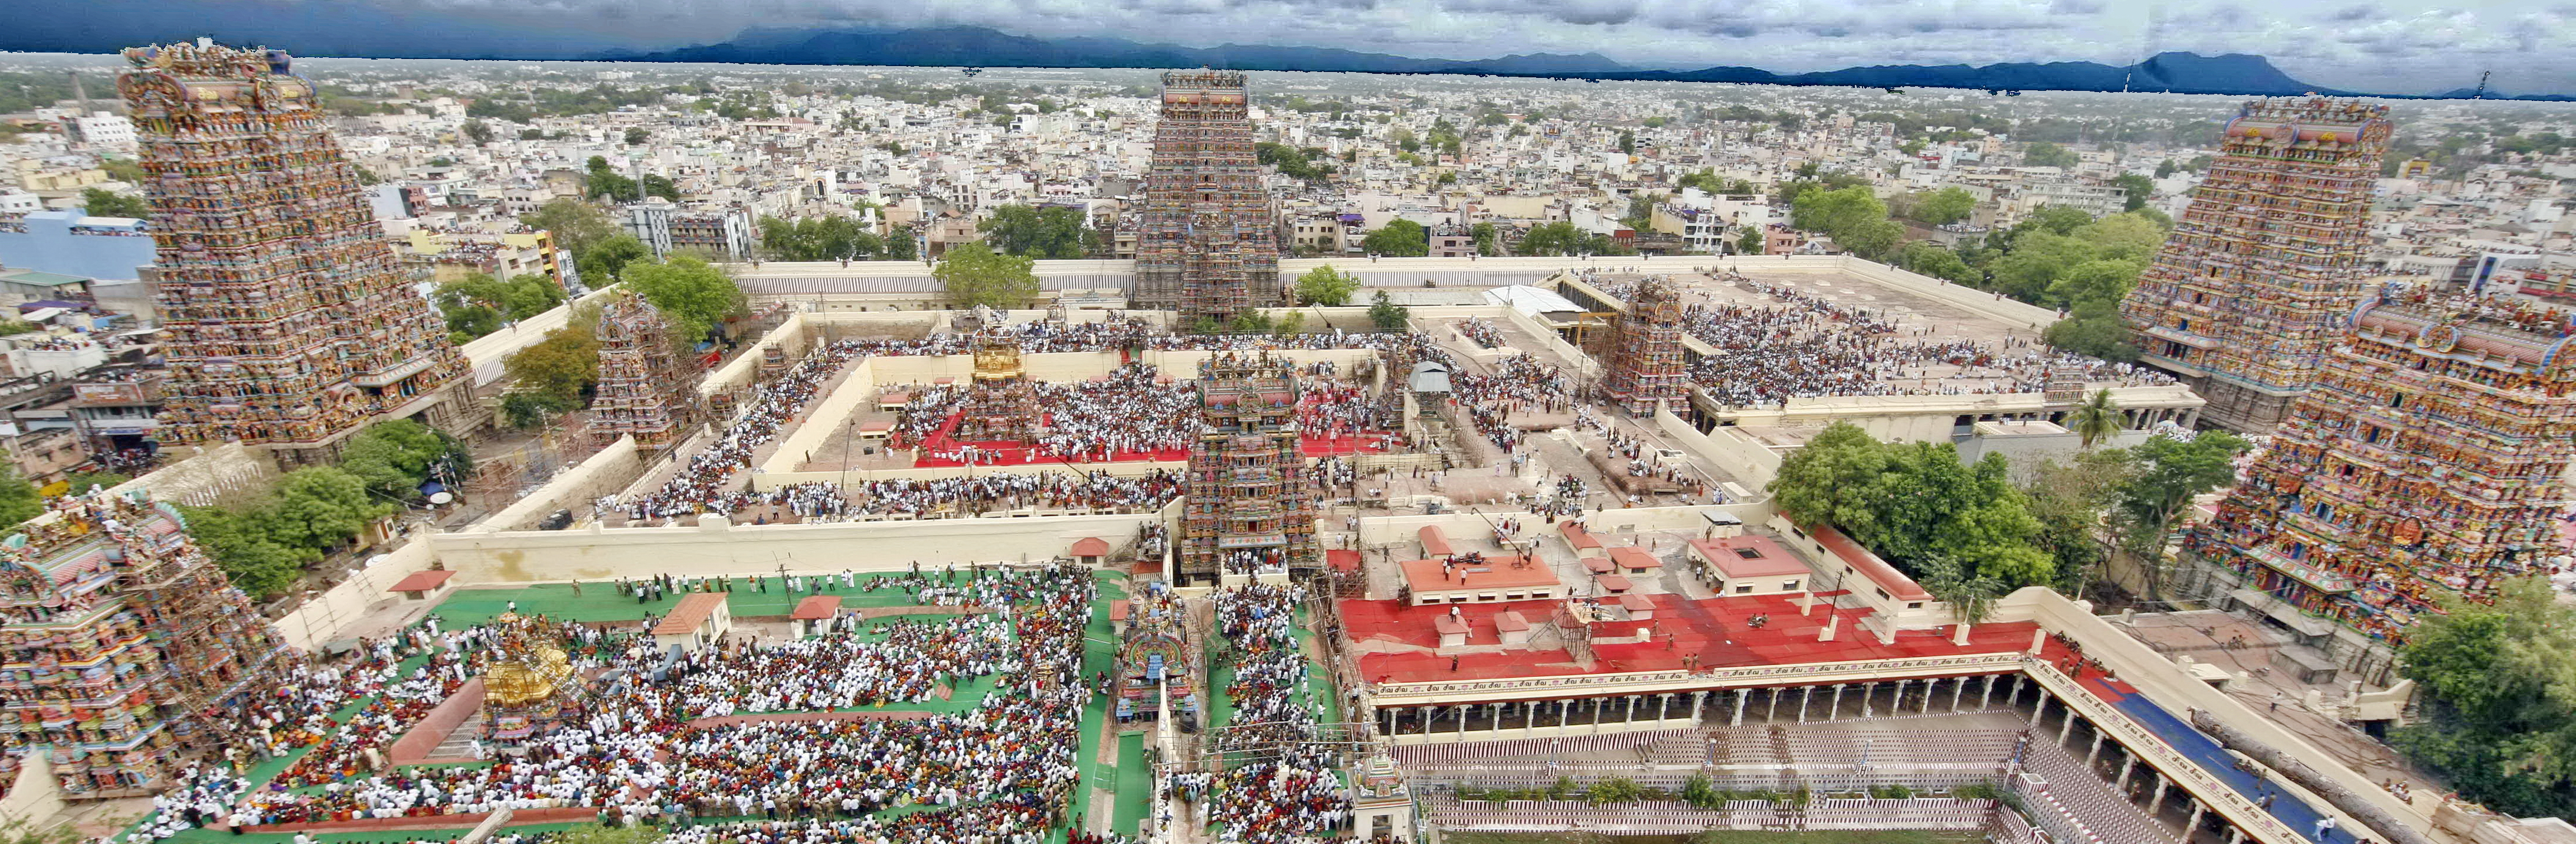 Aerial View of Madurai.jpg